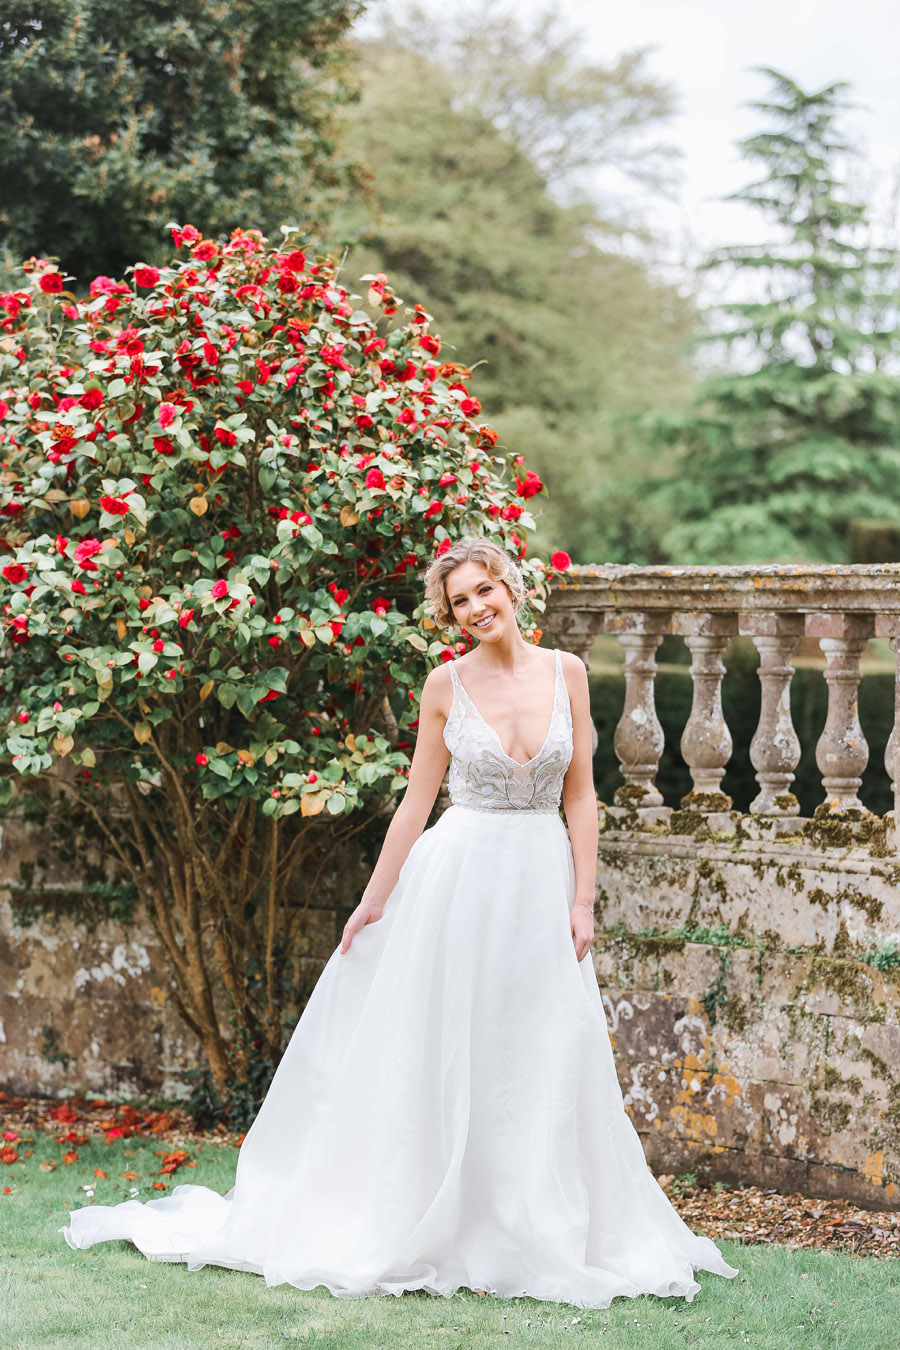 Romantic wedding ideas from Hale Park, photo by Charlotte Wise Photography (47)